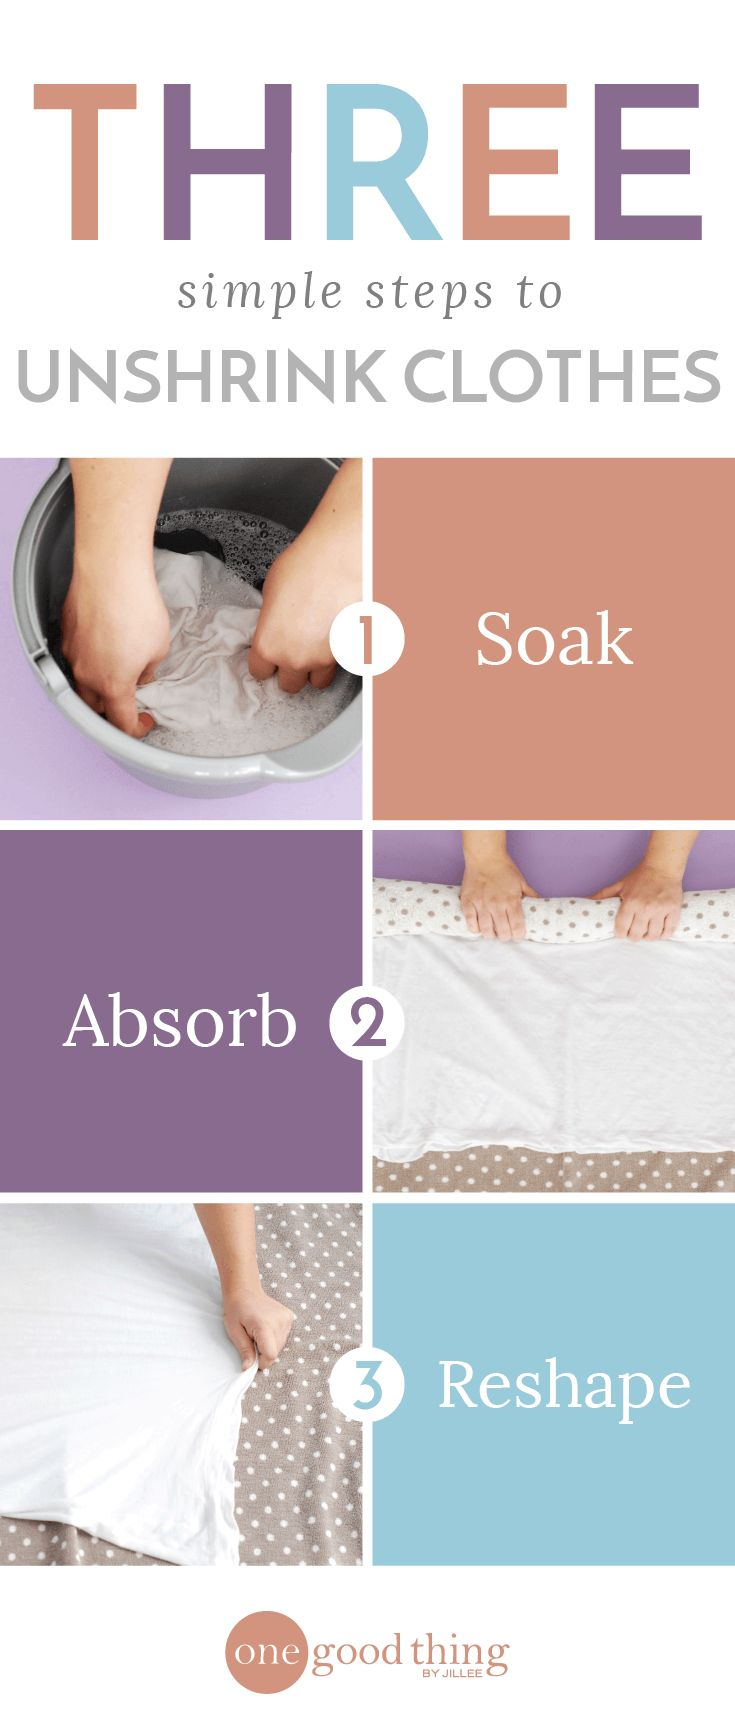 Unshrink Your Clothes In 3 Simple Steps. Add capful of baby shampoo to bucket of lukewarm water!